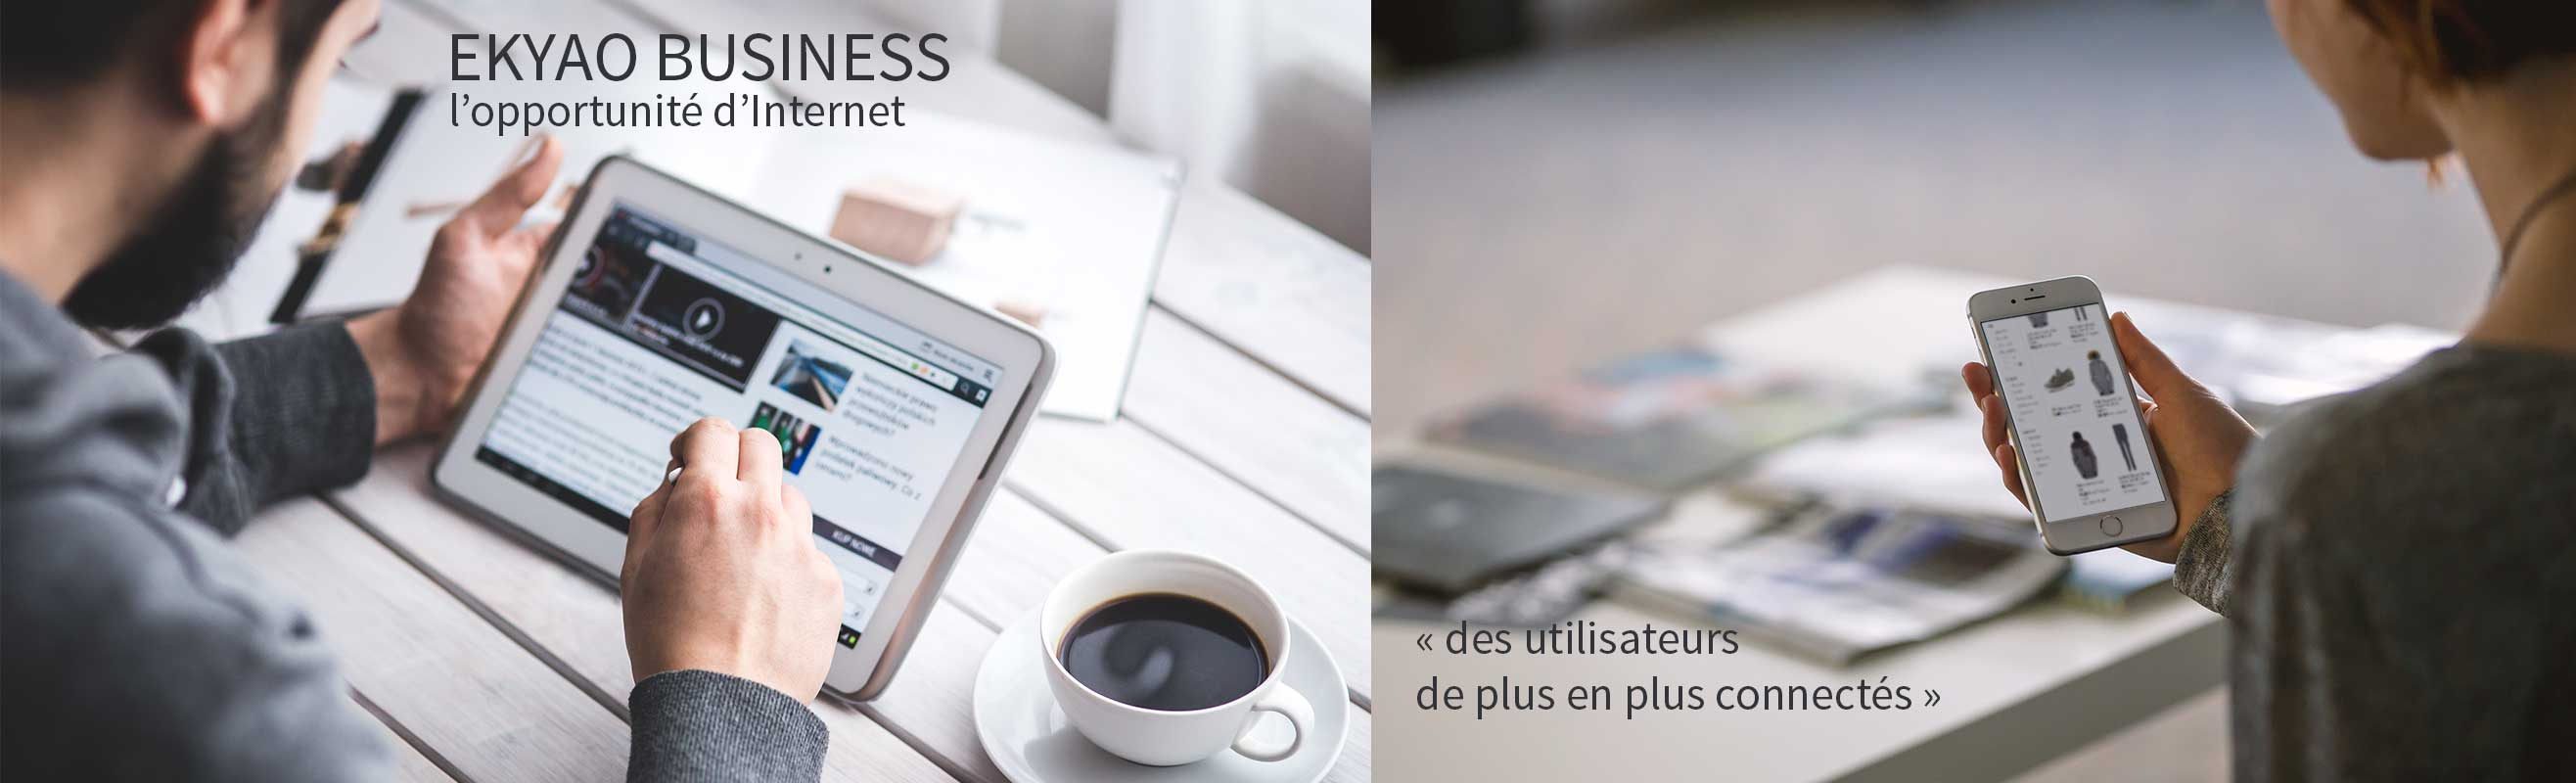 Ekyao Business Print-Marketing. Des utilisateurs de plus en plus connectés